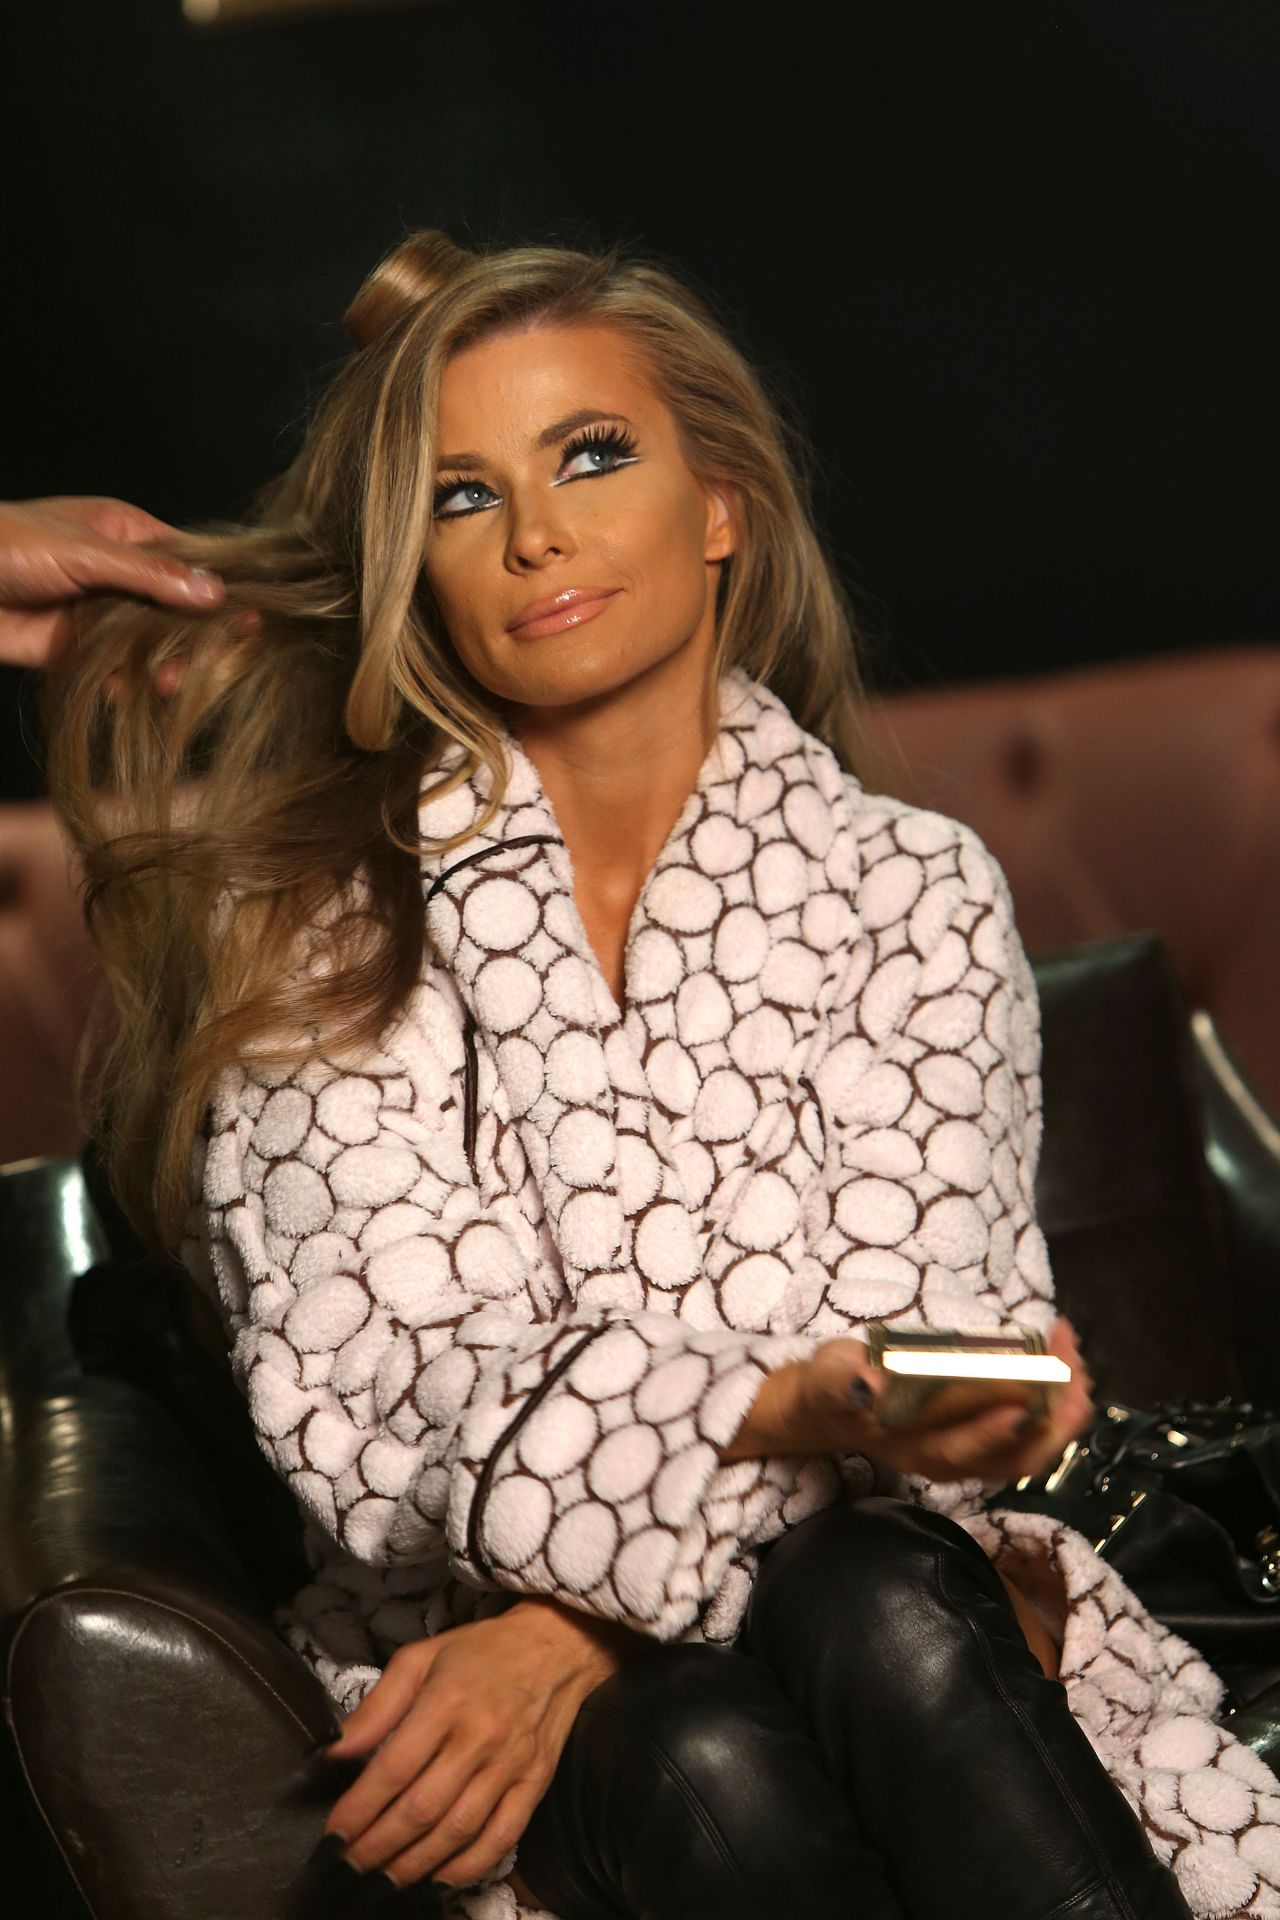 carmen electra photoshoot for 2014 calendar at bootsy